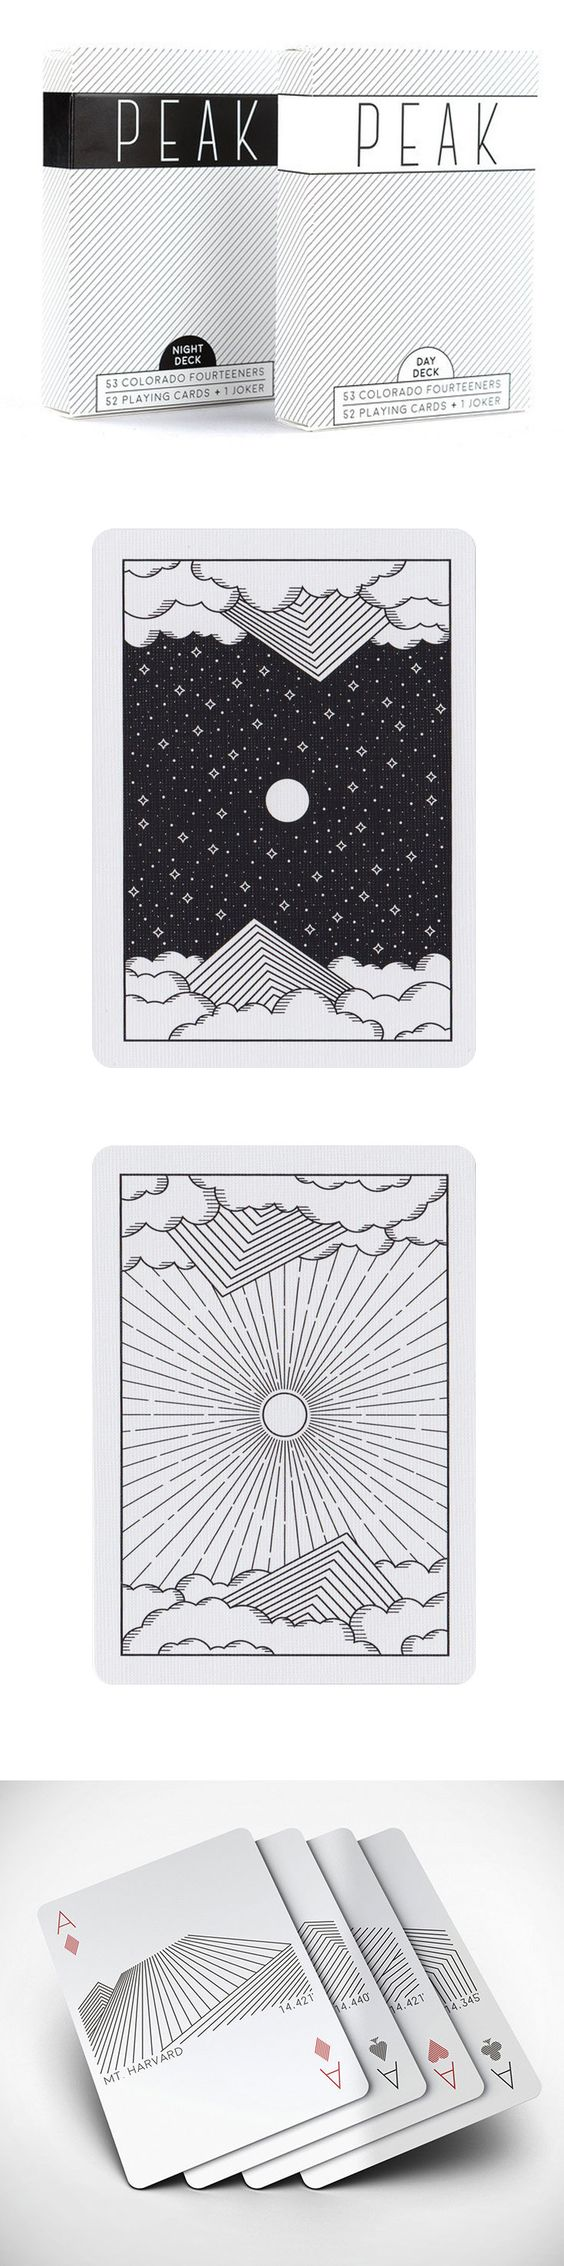 """Reach for the peak with 53 custom designed playing cards that celebrate each of Colorado's 53 """"14ers"""" (mountain peaks 14,000 feet or more above sea level). From Castle Peak to Mt. Massive, all fifty two standard playing cards and one joker feature a minimalistic illustration of one of the 14ers, along with the peak's name and elevation. Also included is a joker featuring the Red Rocks. Choose from the Day Deck or the Night Deck and start planning your next adventure. #colossal"""